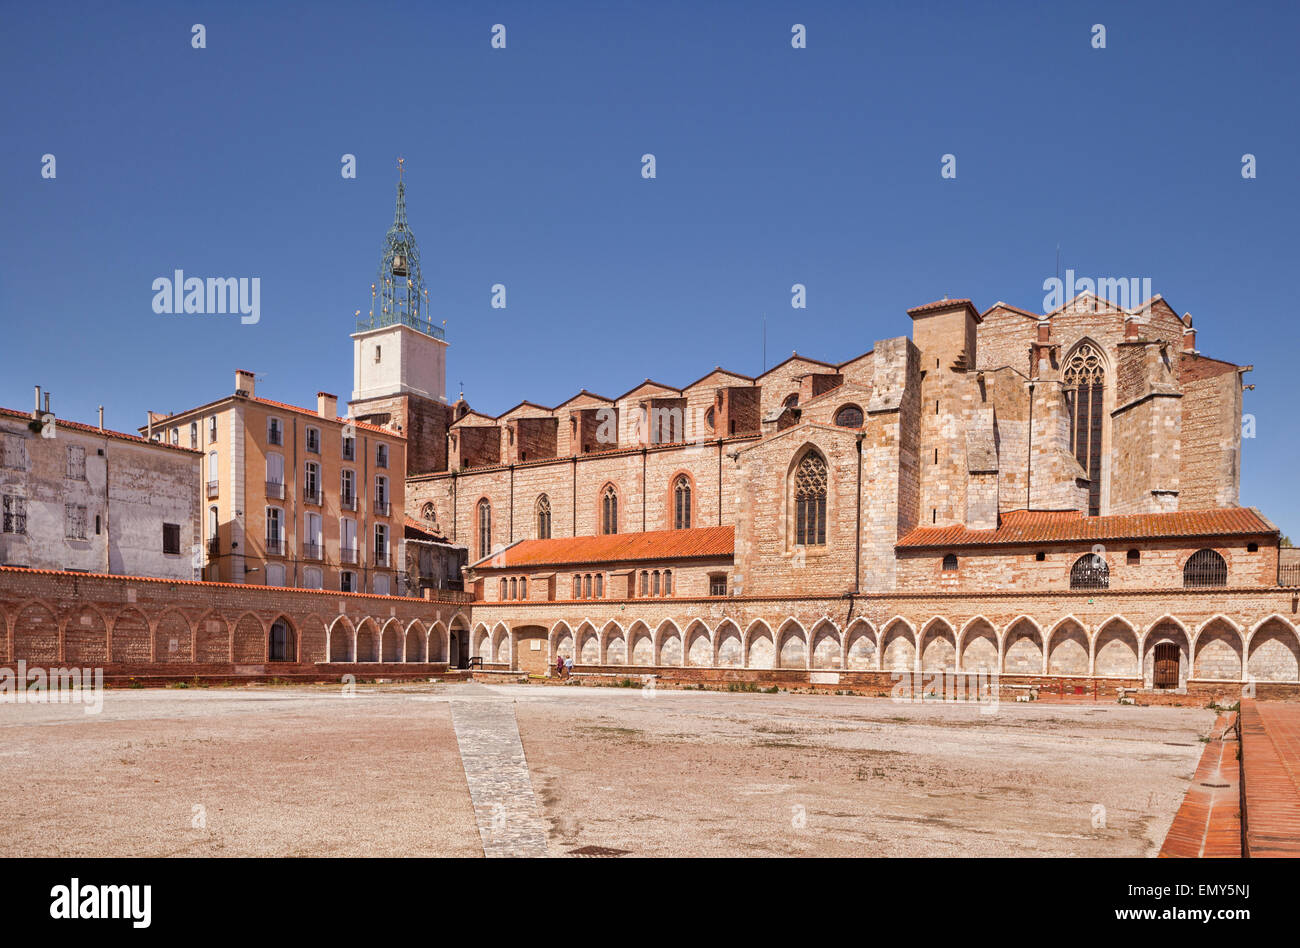 Campo Santo Funeraria and Cathedral Basilica of Saint John the Baptist of Perpignan, Languedoc-Roussillon,Pyrenees - Stock Image